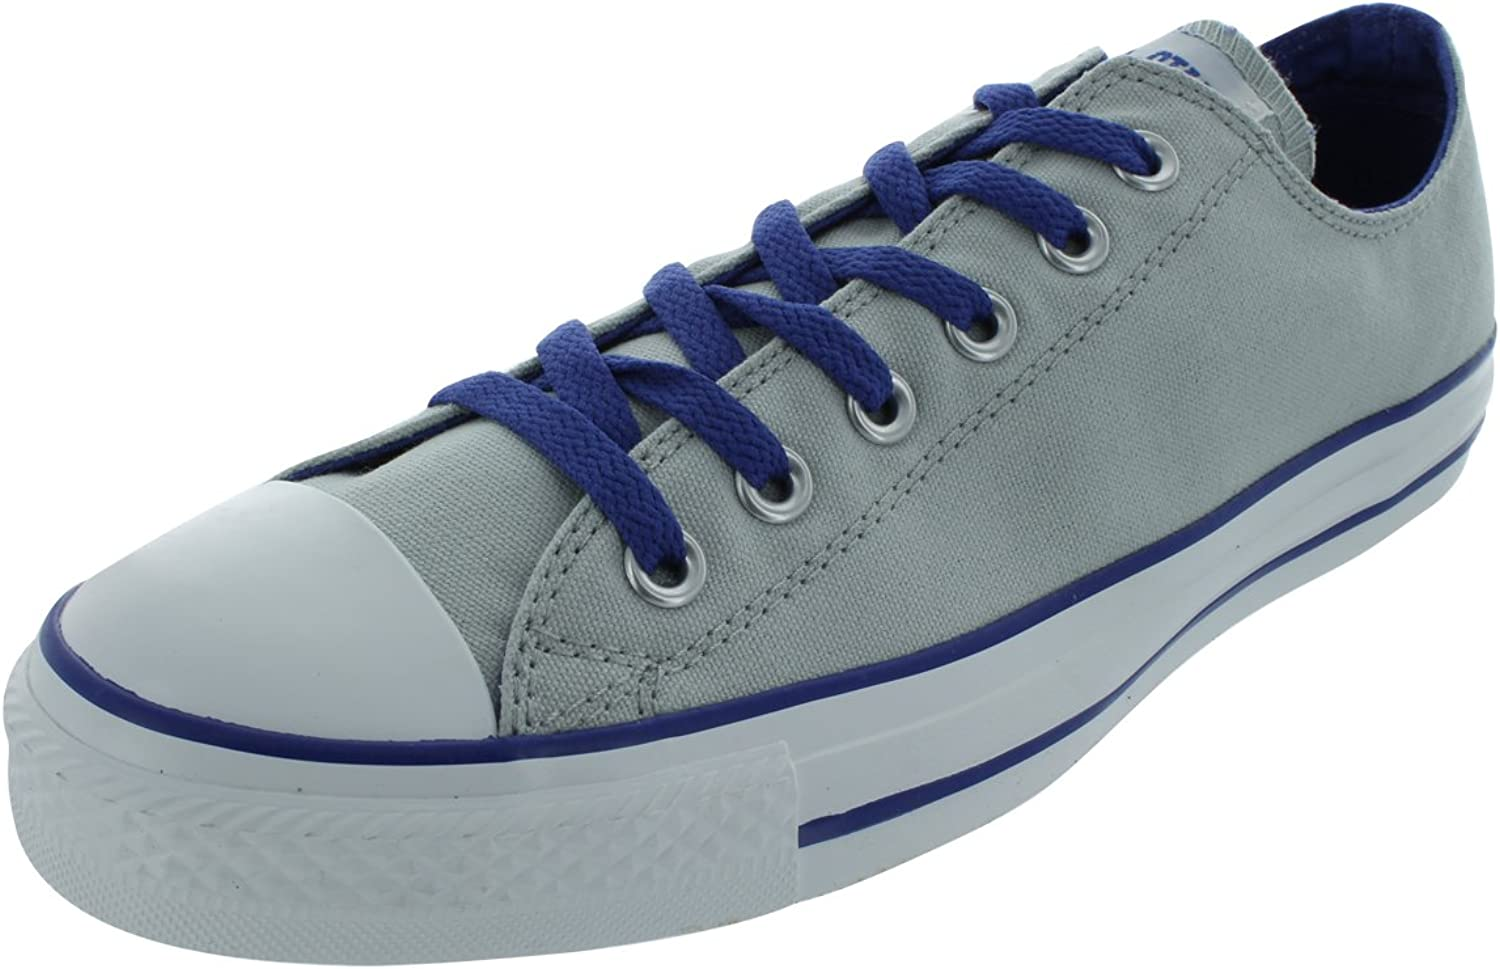 Converse Chuck Taylor All Star OX Basketball shoes